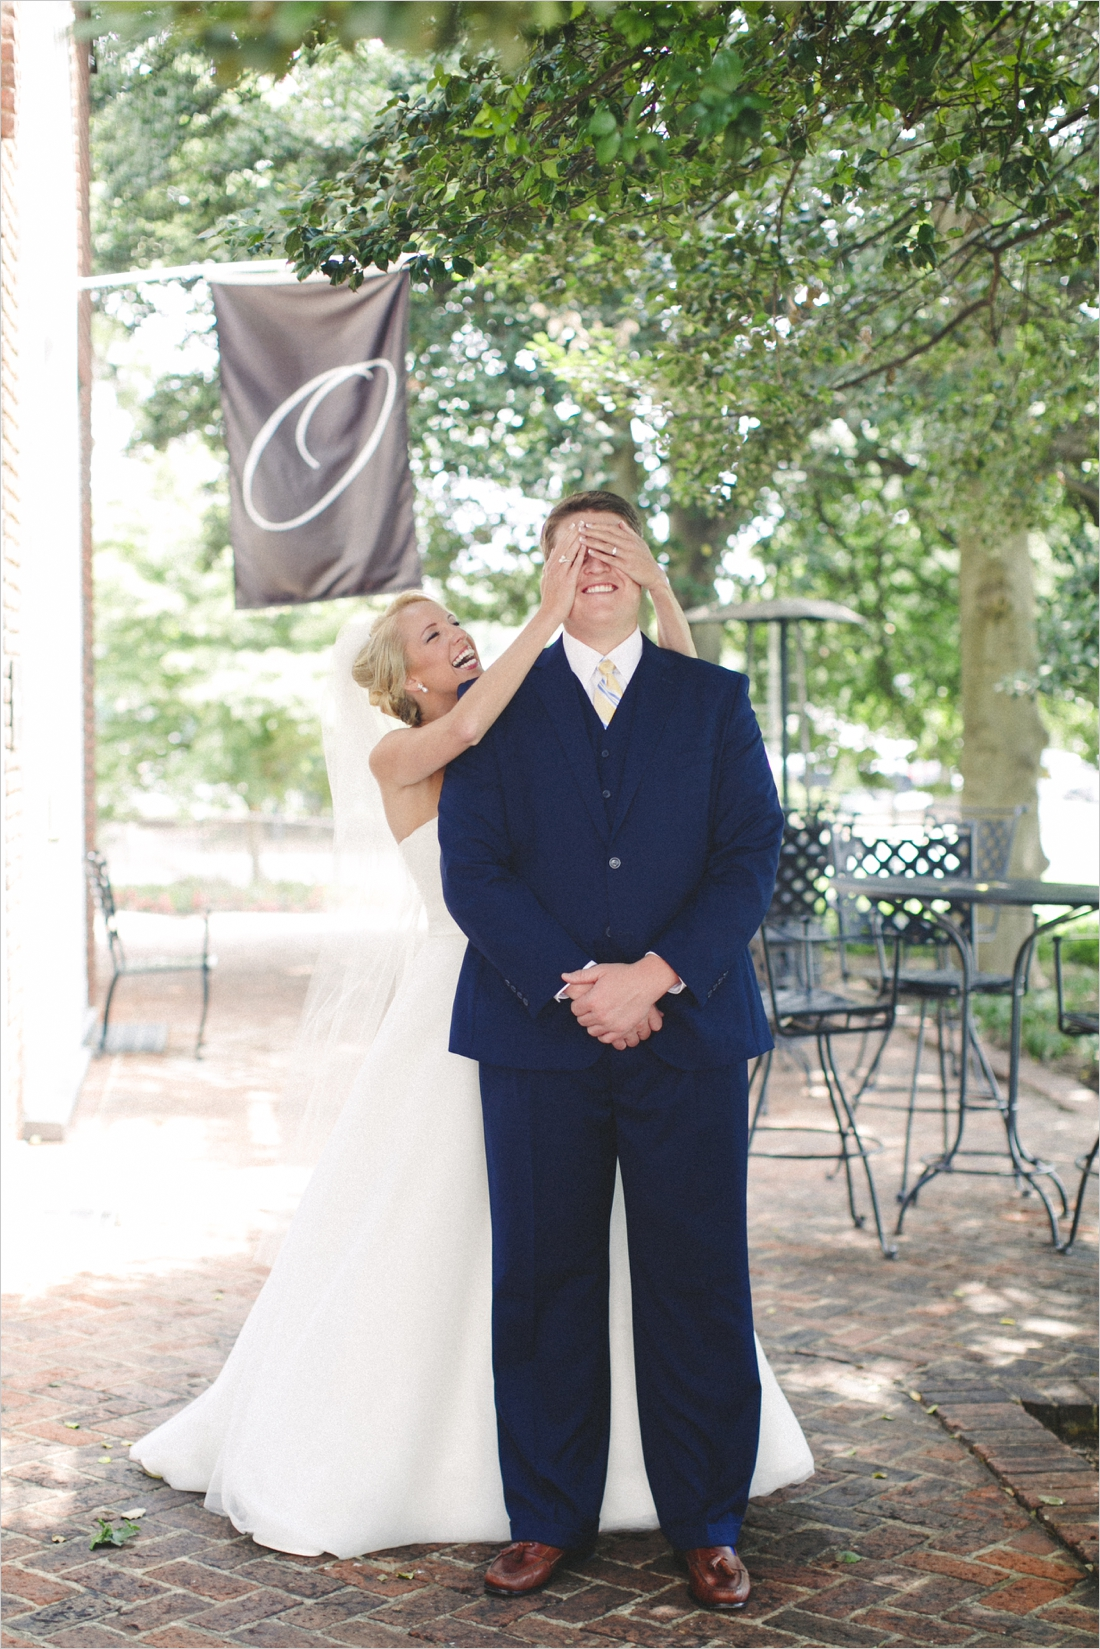 jess_tyler-bright-cheery-richmond-virginia-wedding_0010